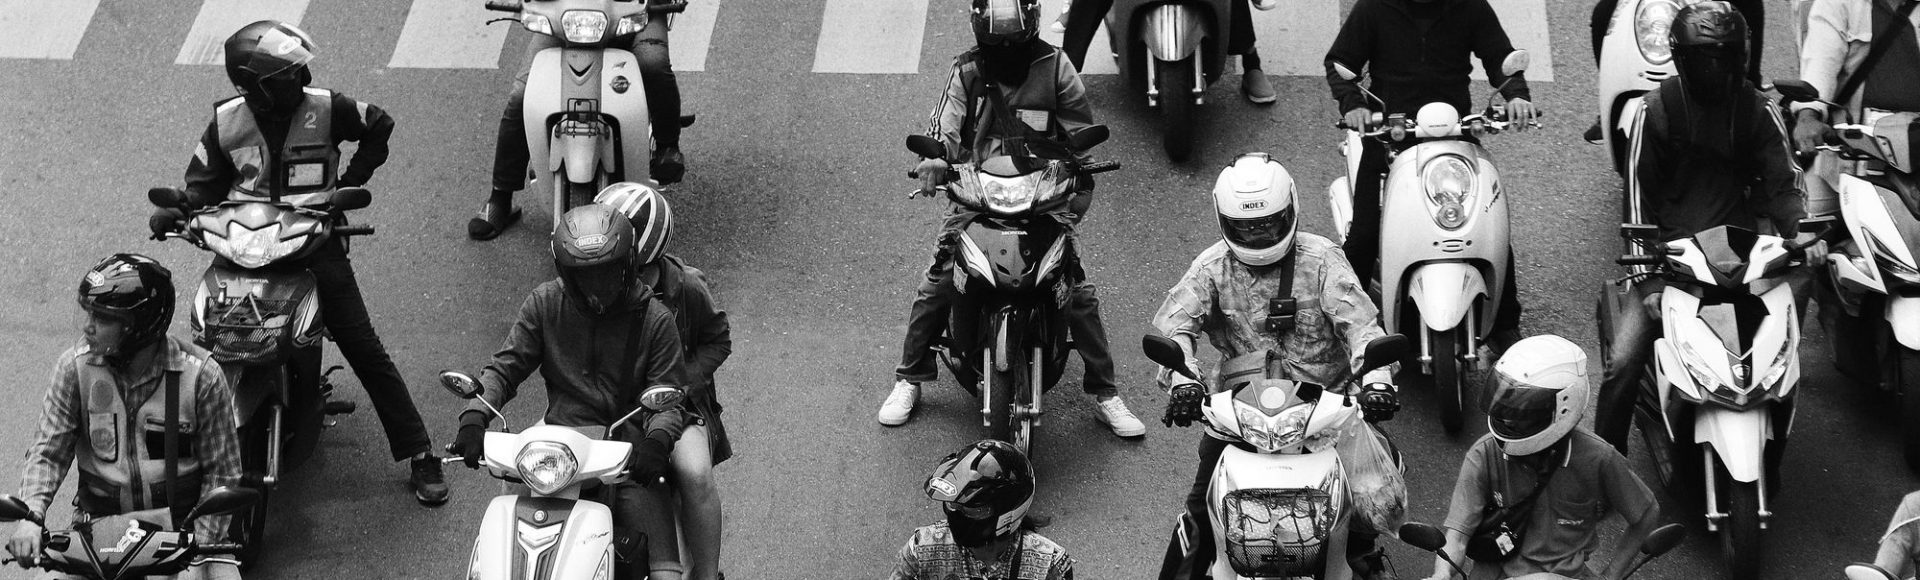 Insurances for Motorcycles, Scooters and Mopeds in Spain